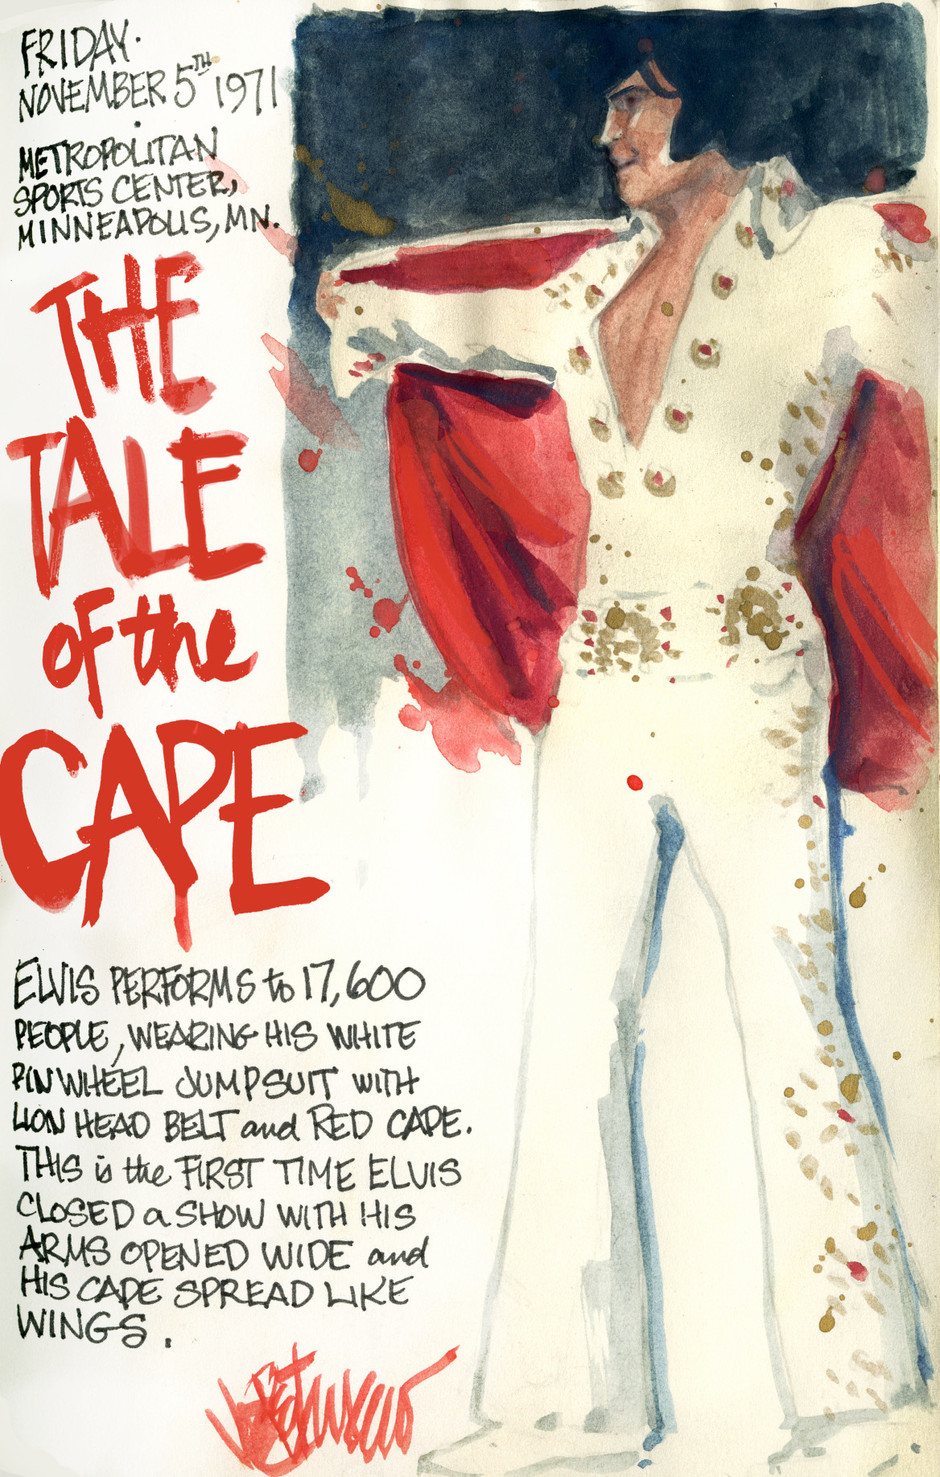 THIS DAY IN ELVIS HISTORY... THE TALE OF THE CAPE